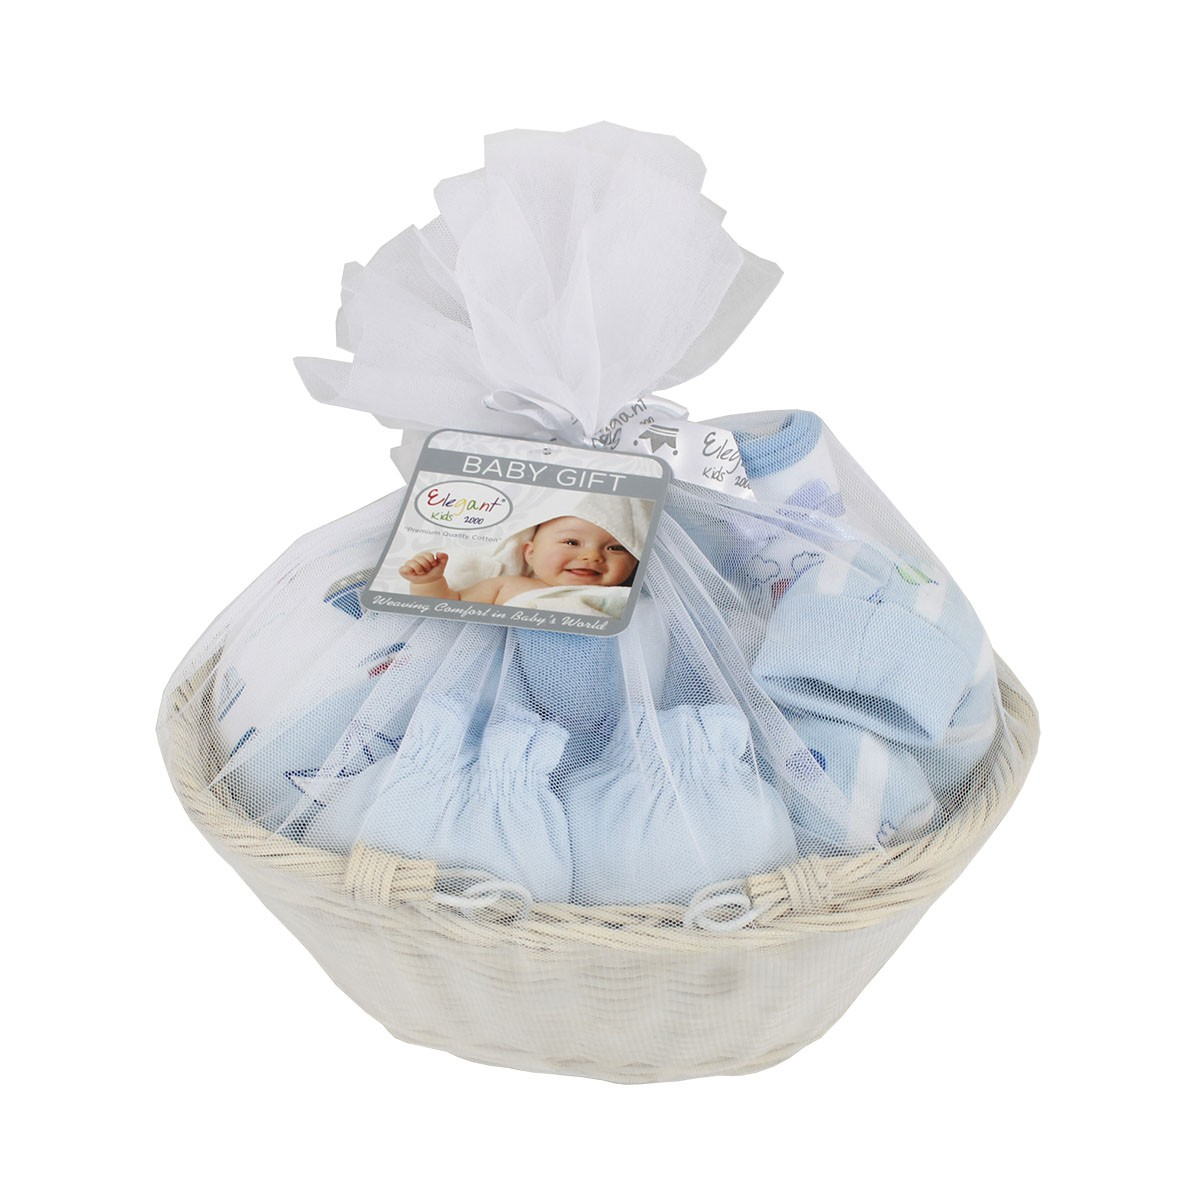 Diy do it yourself baby basket no7 for lilsoft baby diy do it yourself baby basket no7 solutioingenieria Choice Image